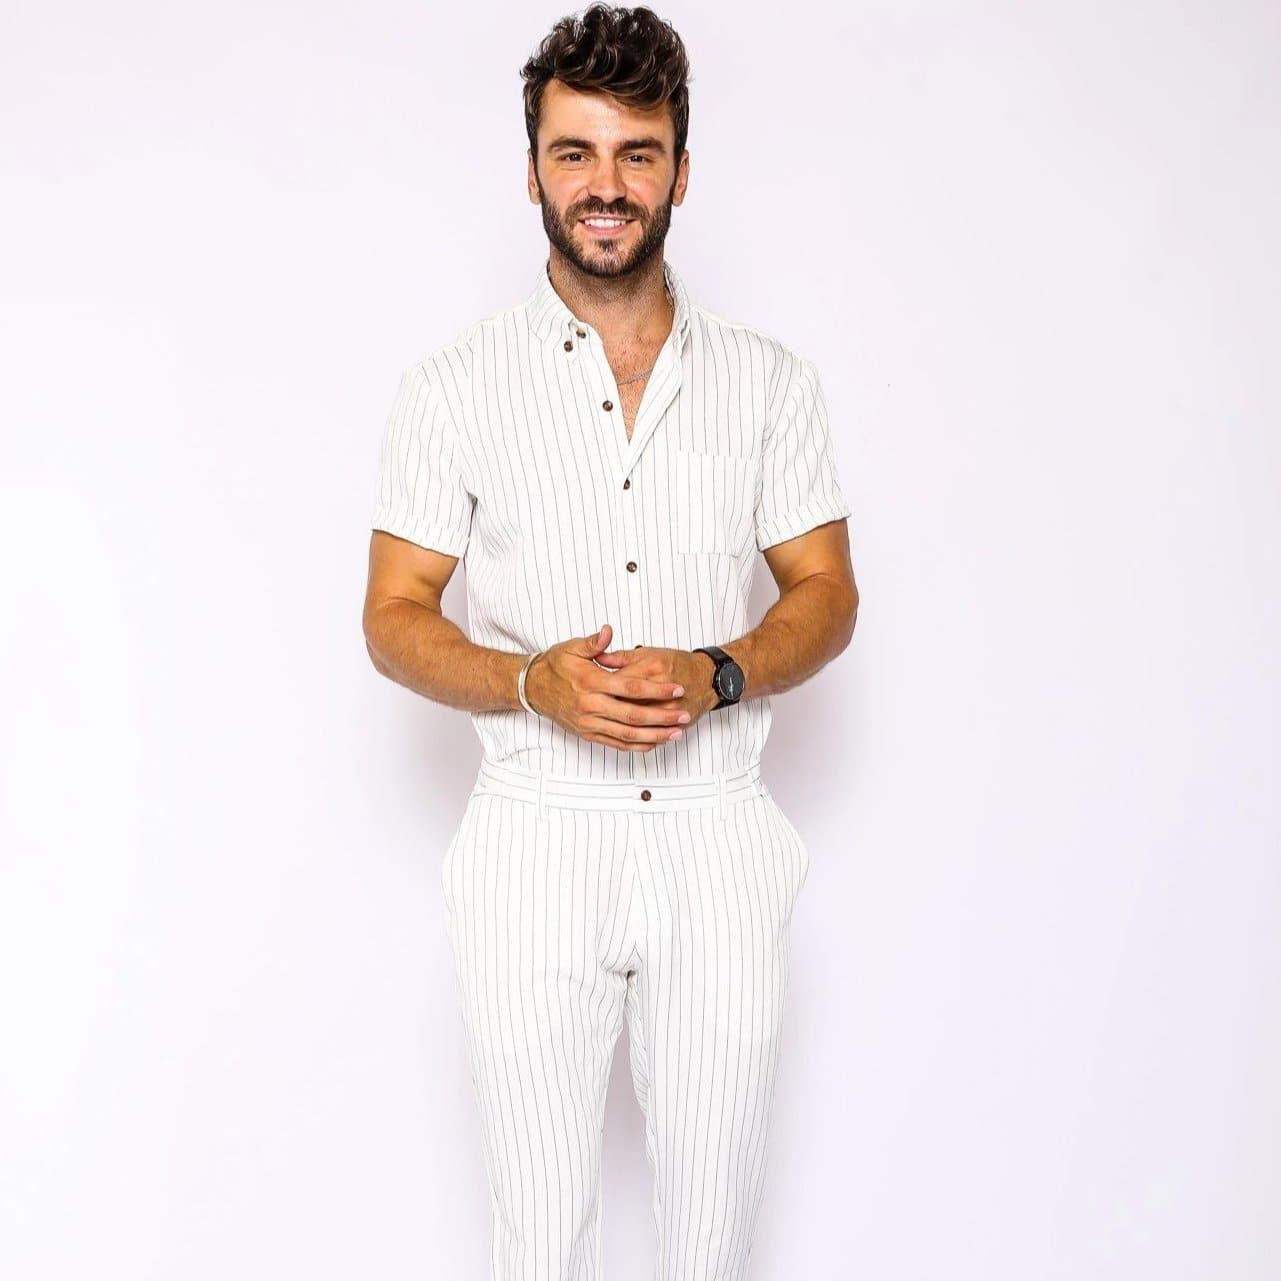 White Chateaux Jumpsuit - RomperJack, Mens Jumpsuit - Male Romper